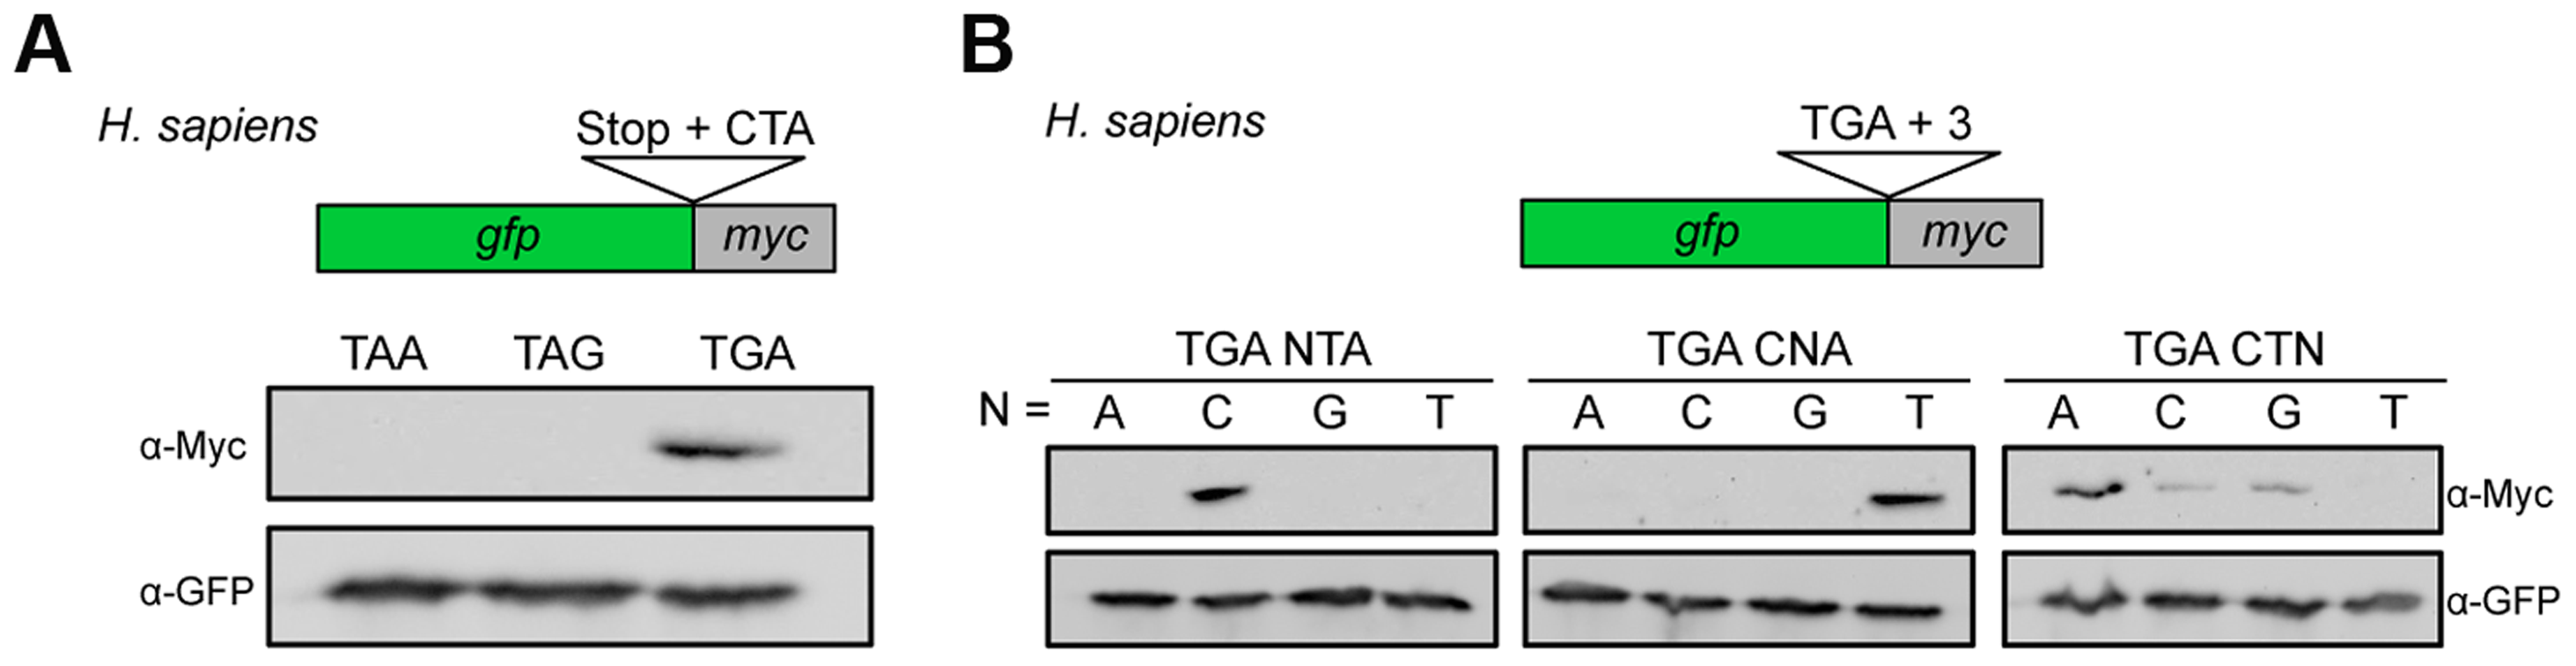 Characterization of sequence requirements for translational readthrough in human cells.